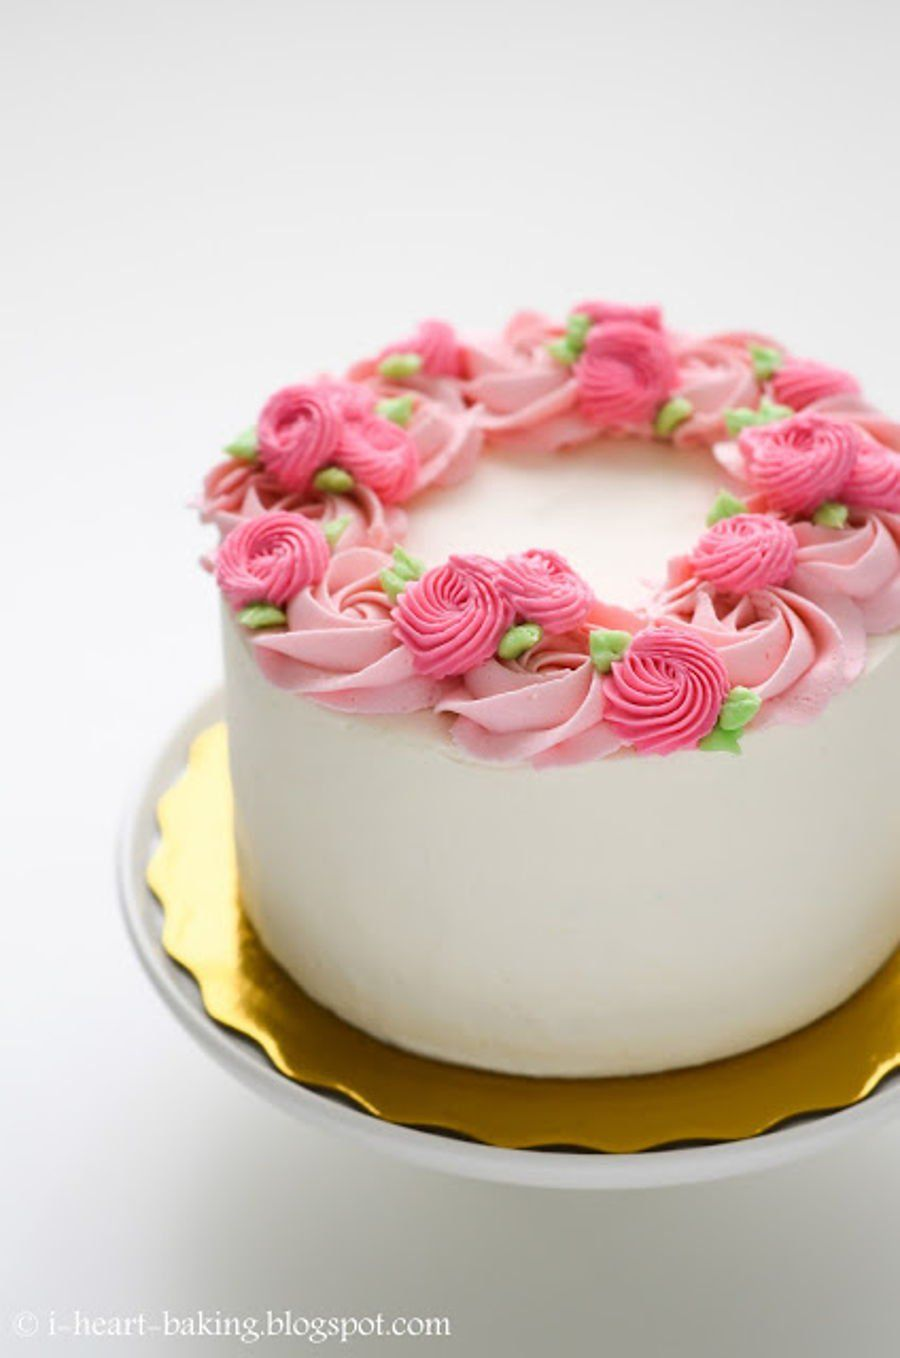 Floral Wreath Cake For Mother S Day Floral Wreath Cake For Mother S Day Chiffon Cake Filled With Whipped Cre Cake Decorating Simple Birthday Cake Spring Cake